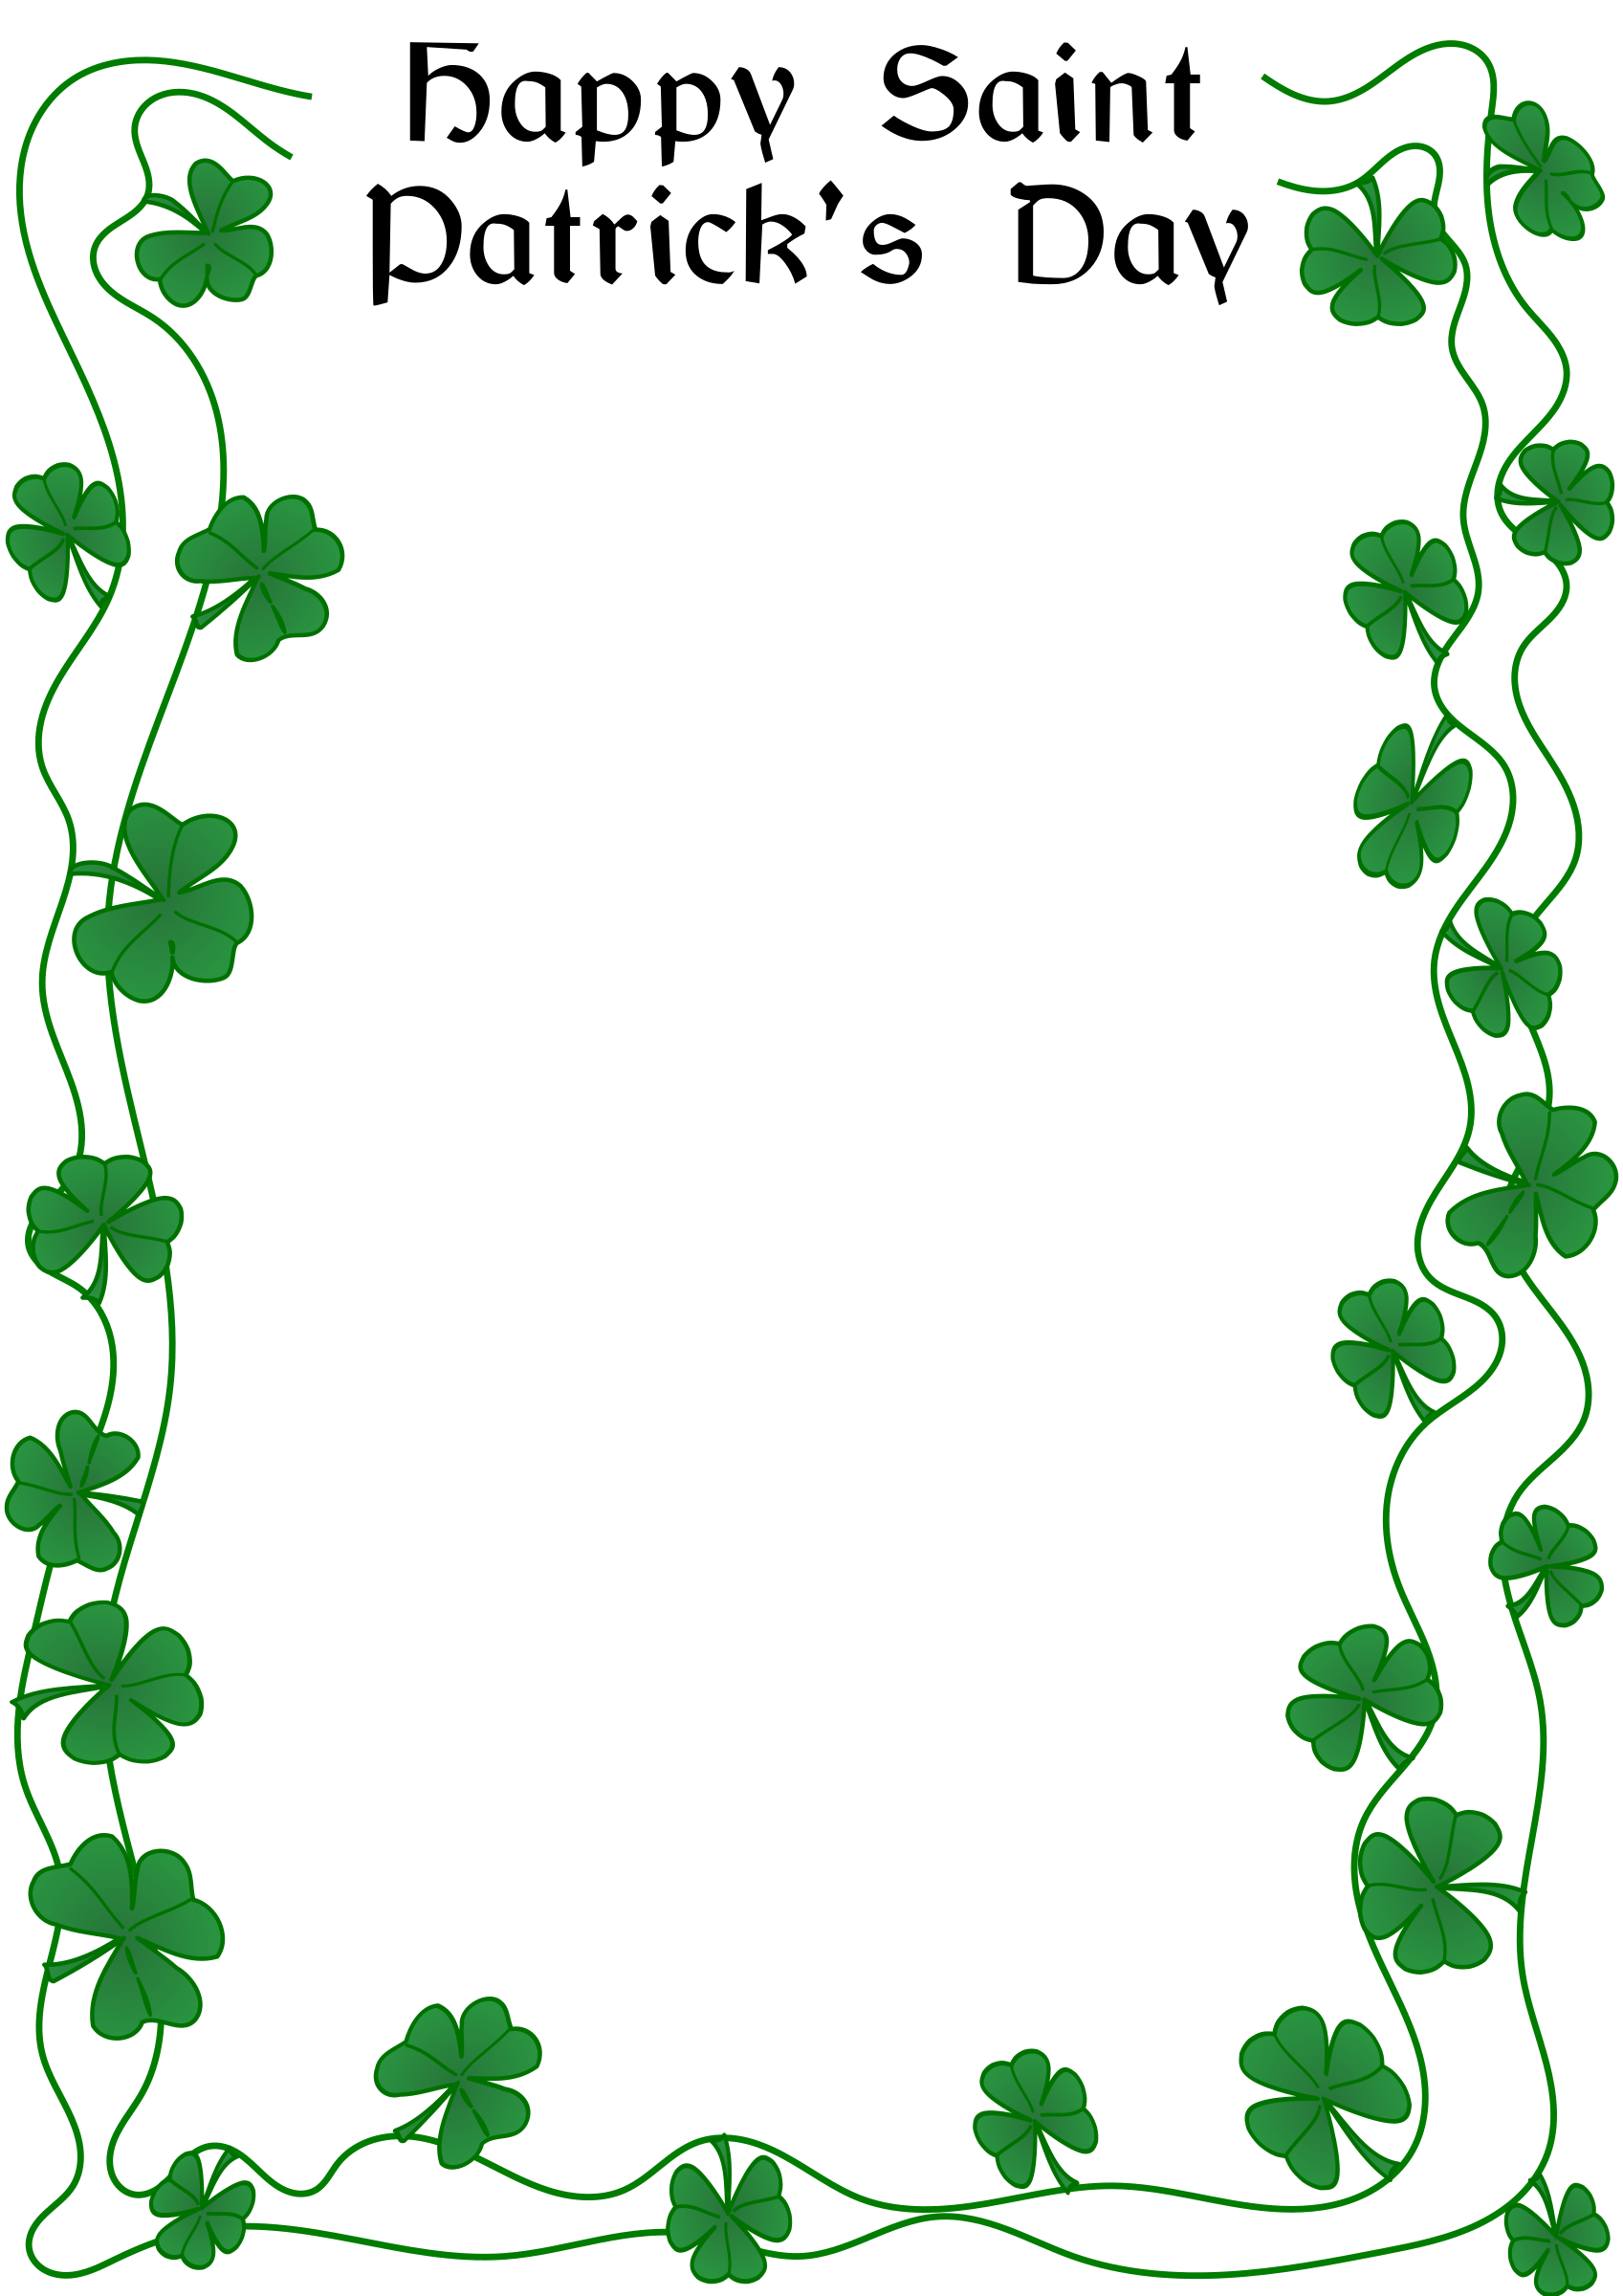 St Patrick's Day border by @Arvin61r58, St. Patrick's Day border, on.